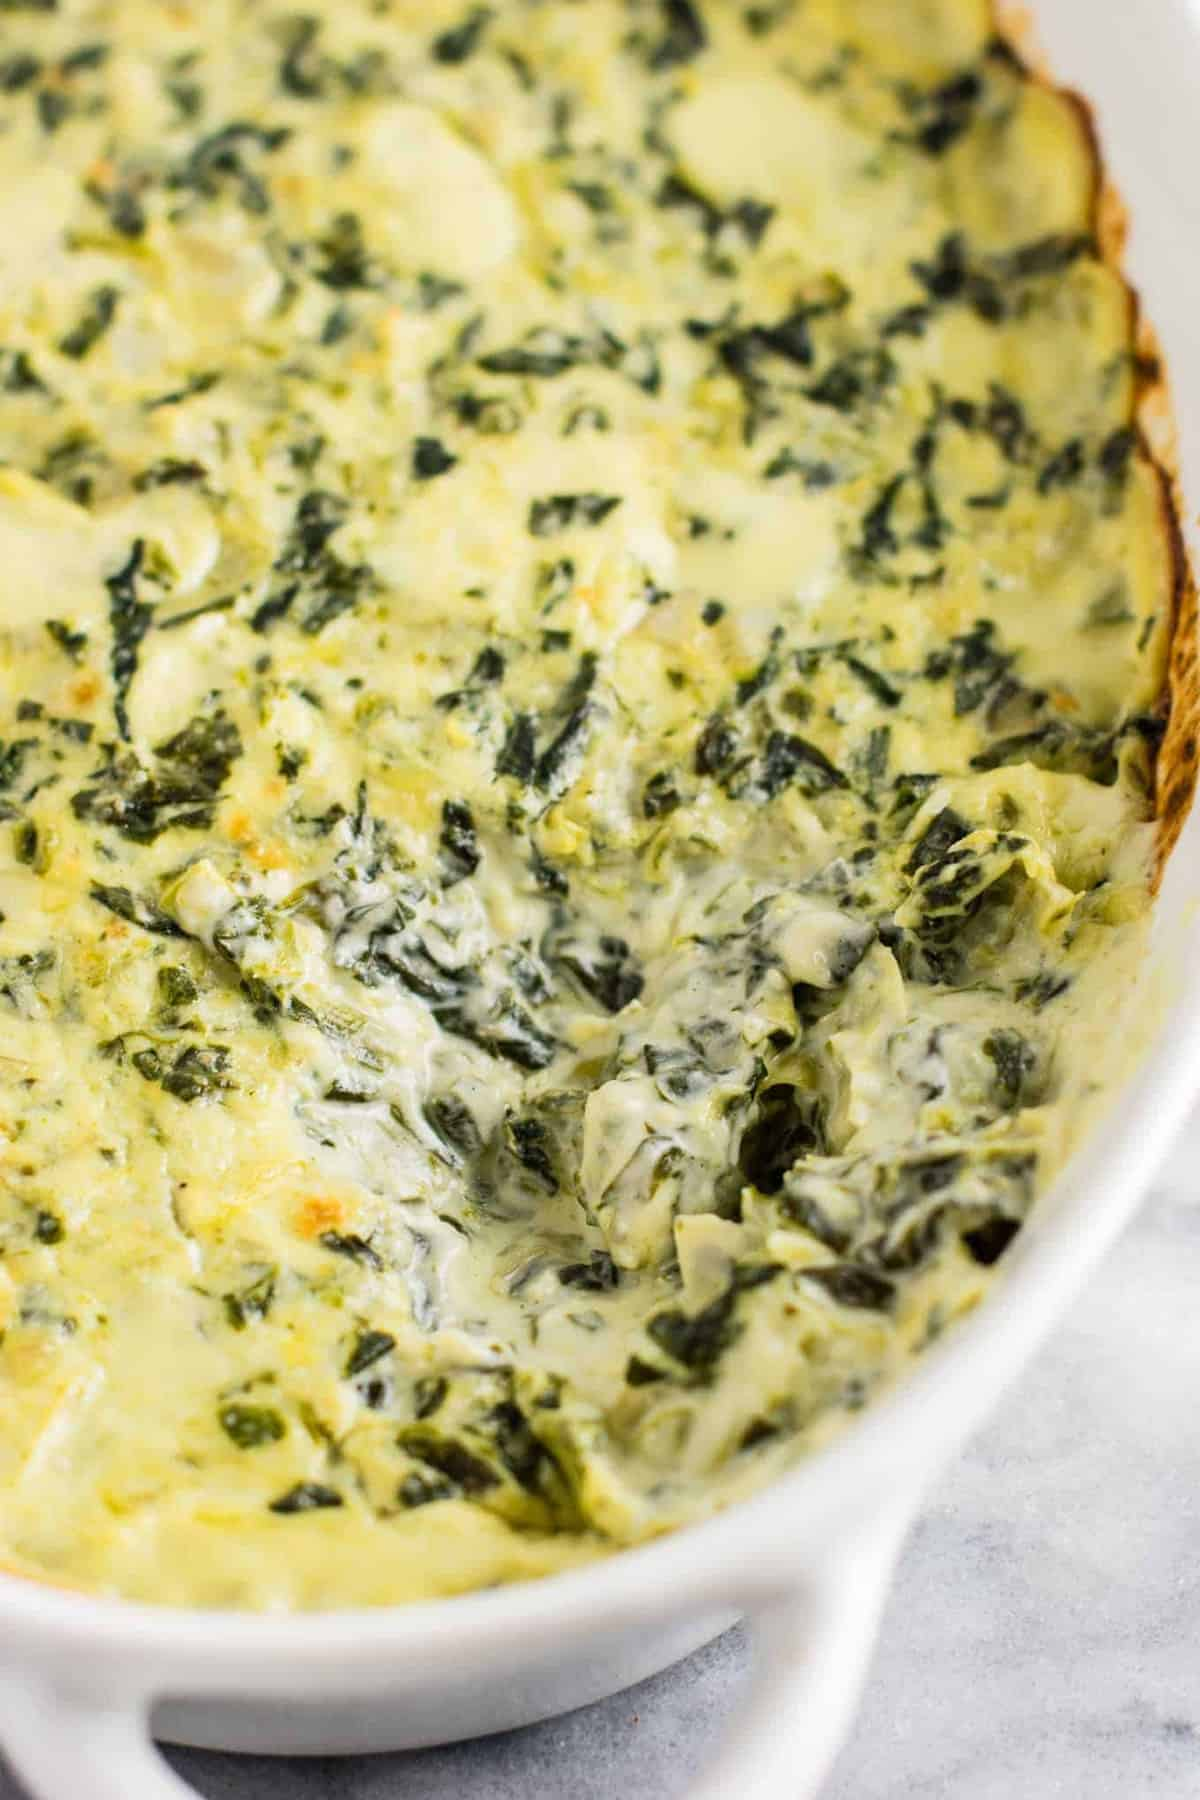 The best creamy spinach artichoke dip recipe with Havarti and parmesan cheese. This is a hit every time I make it! #spinachartichokedip #appetizer #spinachdip #vegetarian #havarti #parmesan #dips